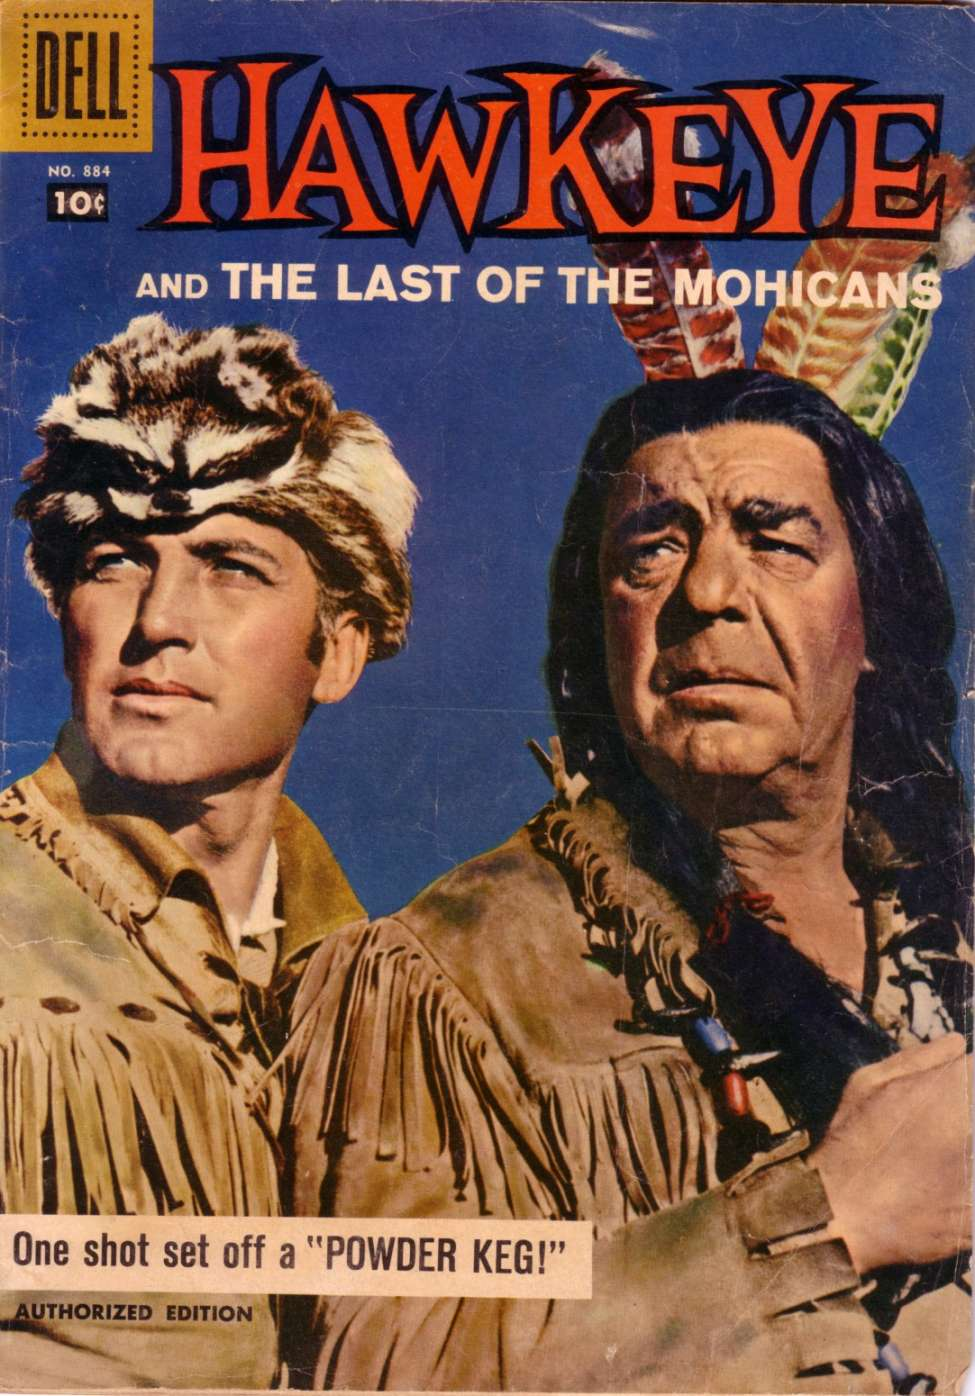 0884 - Hawkeye and the Last of the Mohicans